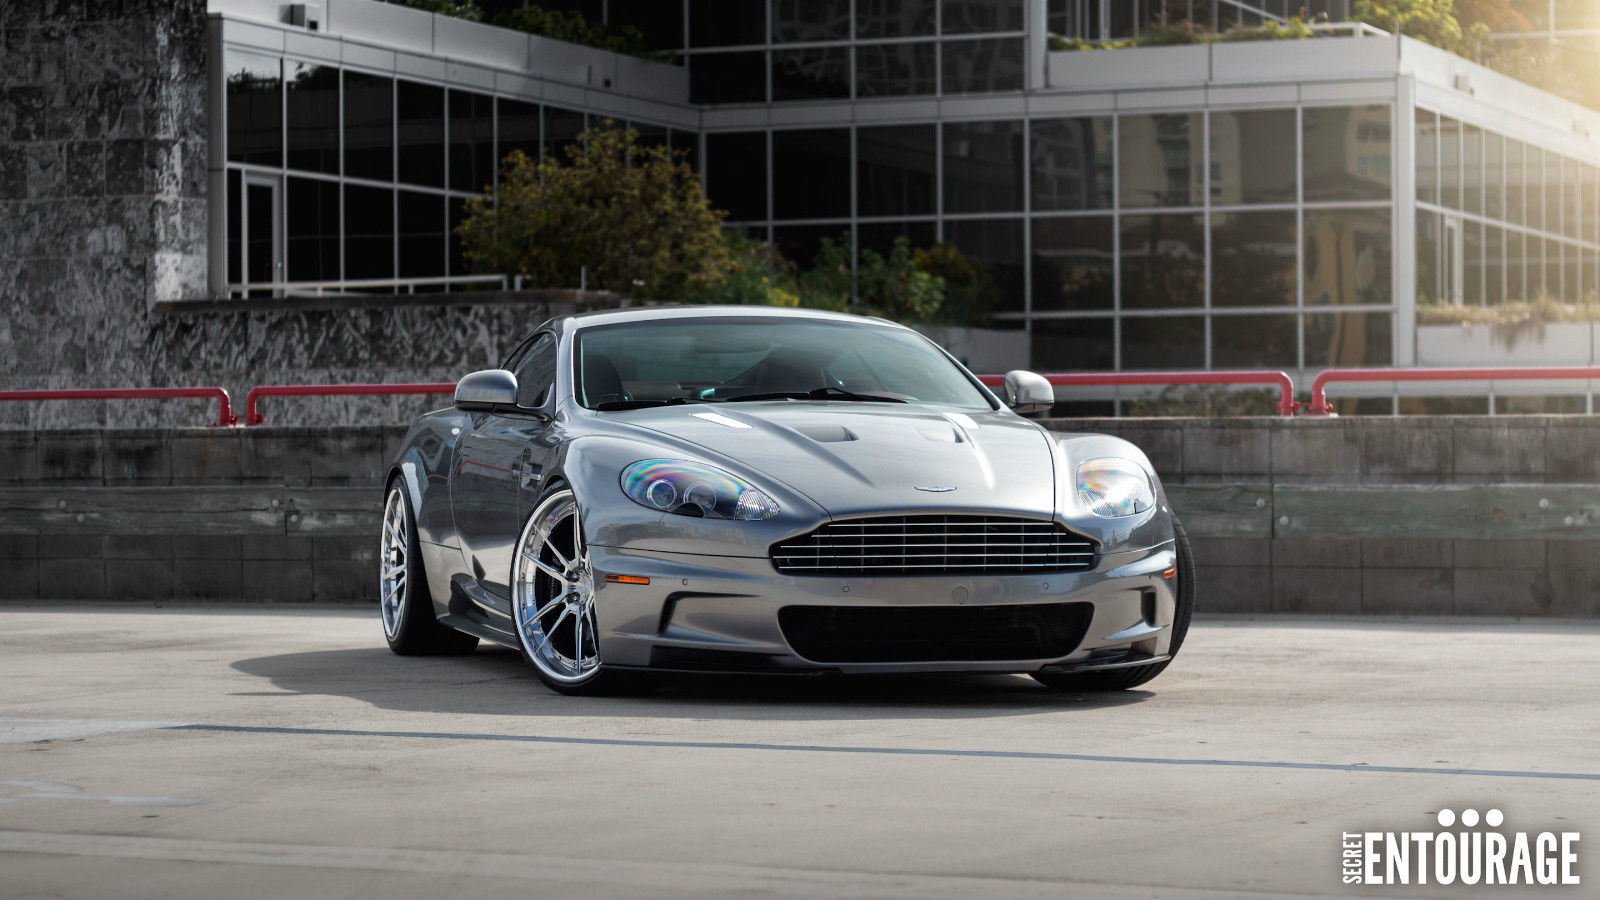 Permalink to Aston Martin Project Car For Sale